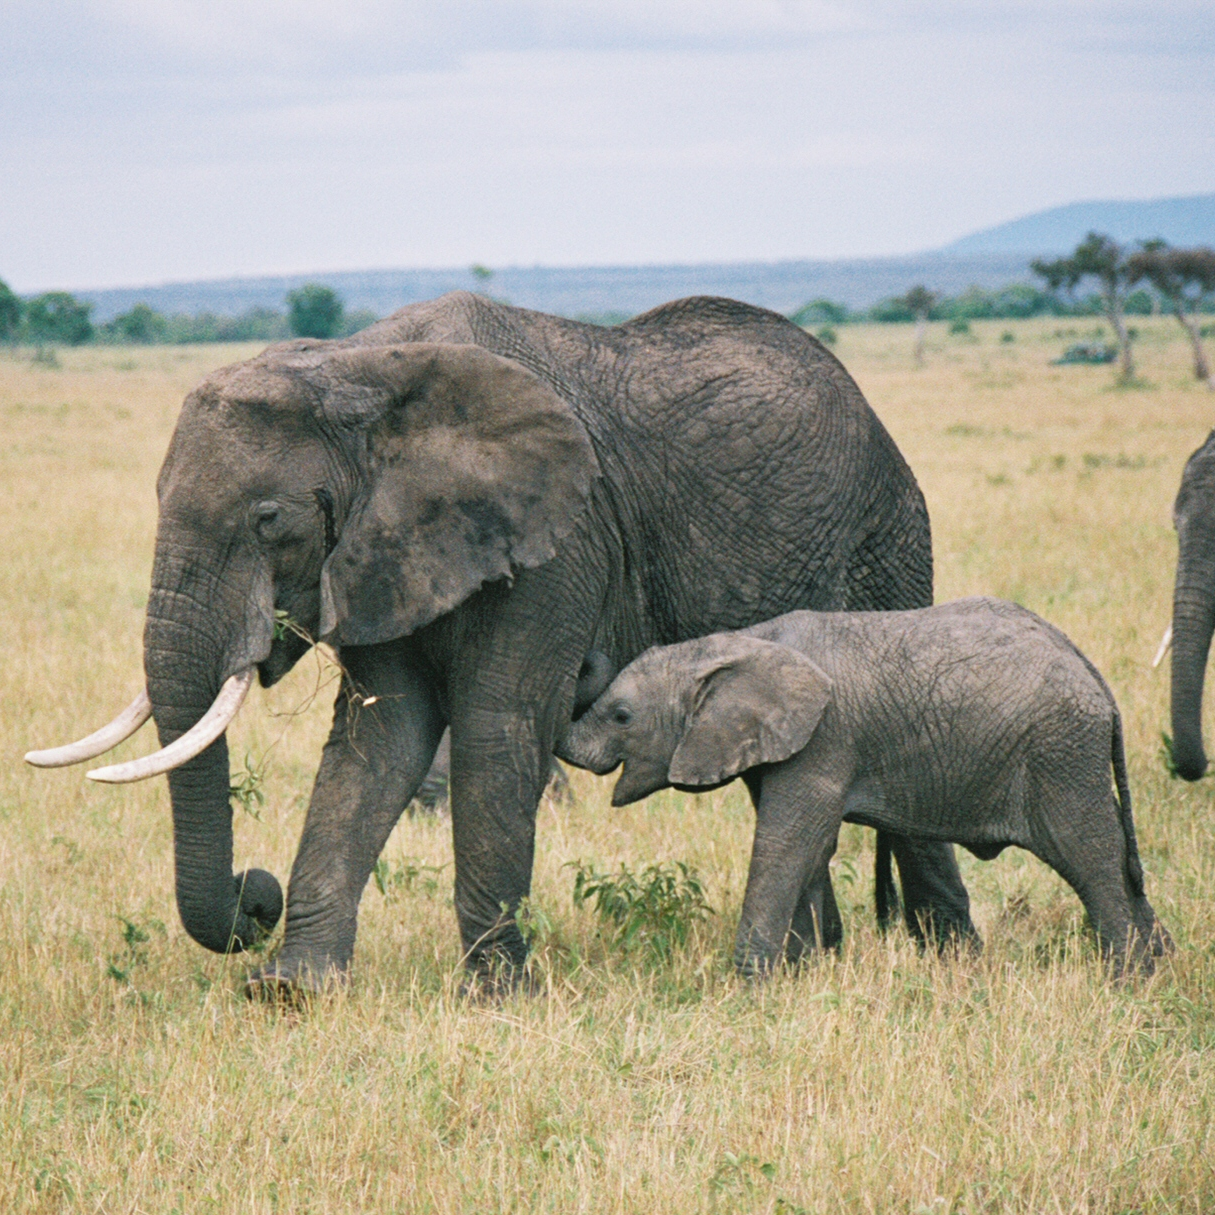 Go on an exciting two-day safari with the Vice Chancellor of Daystar!